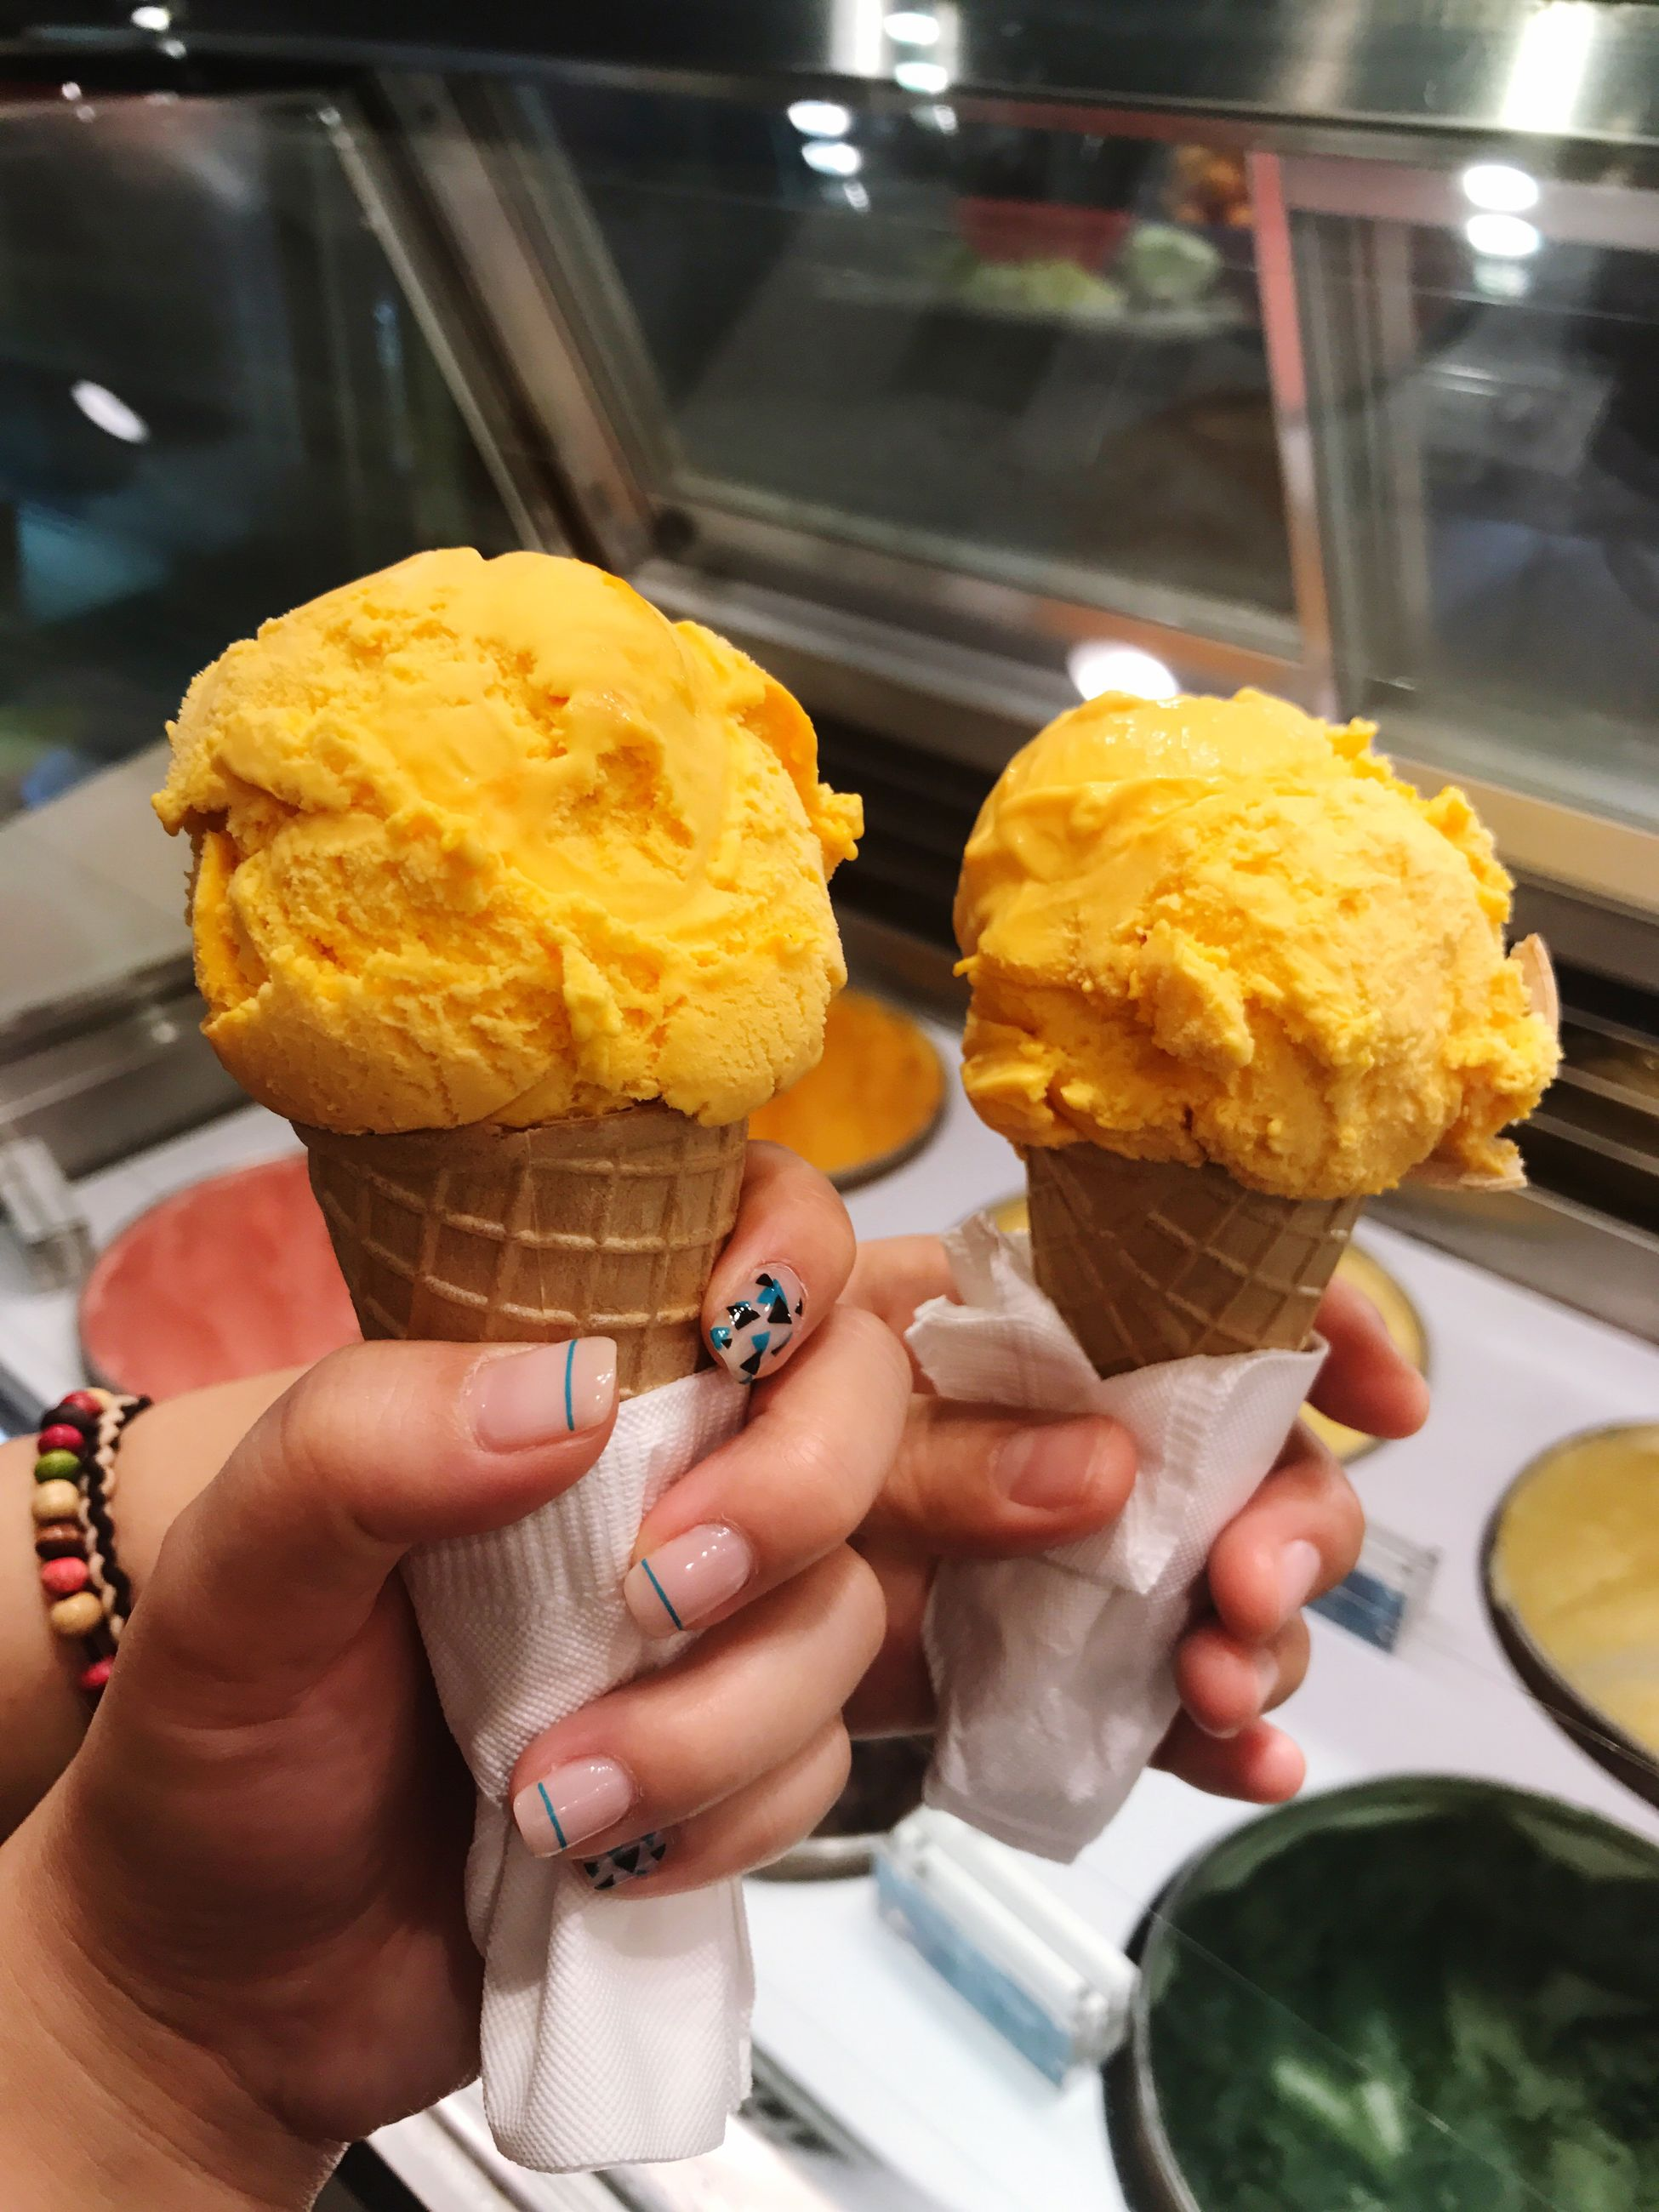 human hand, food and drink, frozen food, sweet food, ice cream, food, dessert, indulgence, human body part, unhealthy eating, holding, temptation, real people, ice cream cone, freshness, ready-to-eat, frozen sweet food, close-up, indoors, day, men, women, scoop shape, ice cream parlor, people